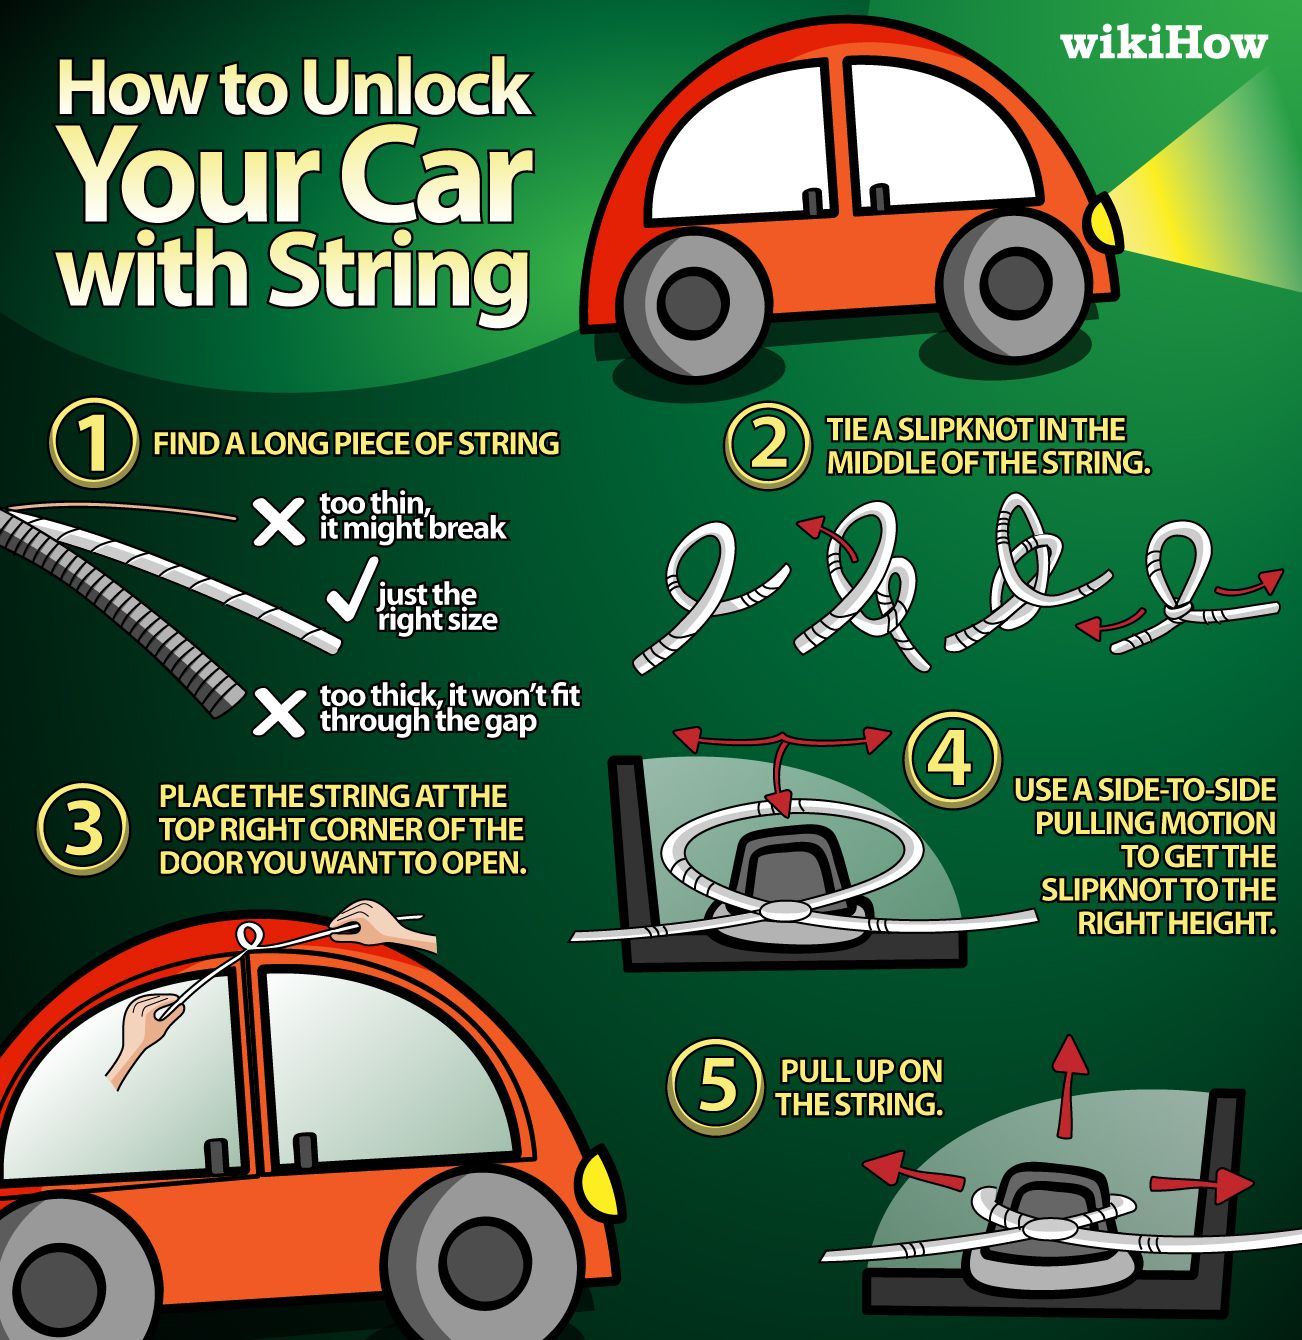 unlock your car with string cars life hacks and survival. Black Bedroom Furniture Sets. Home Design Ideas